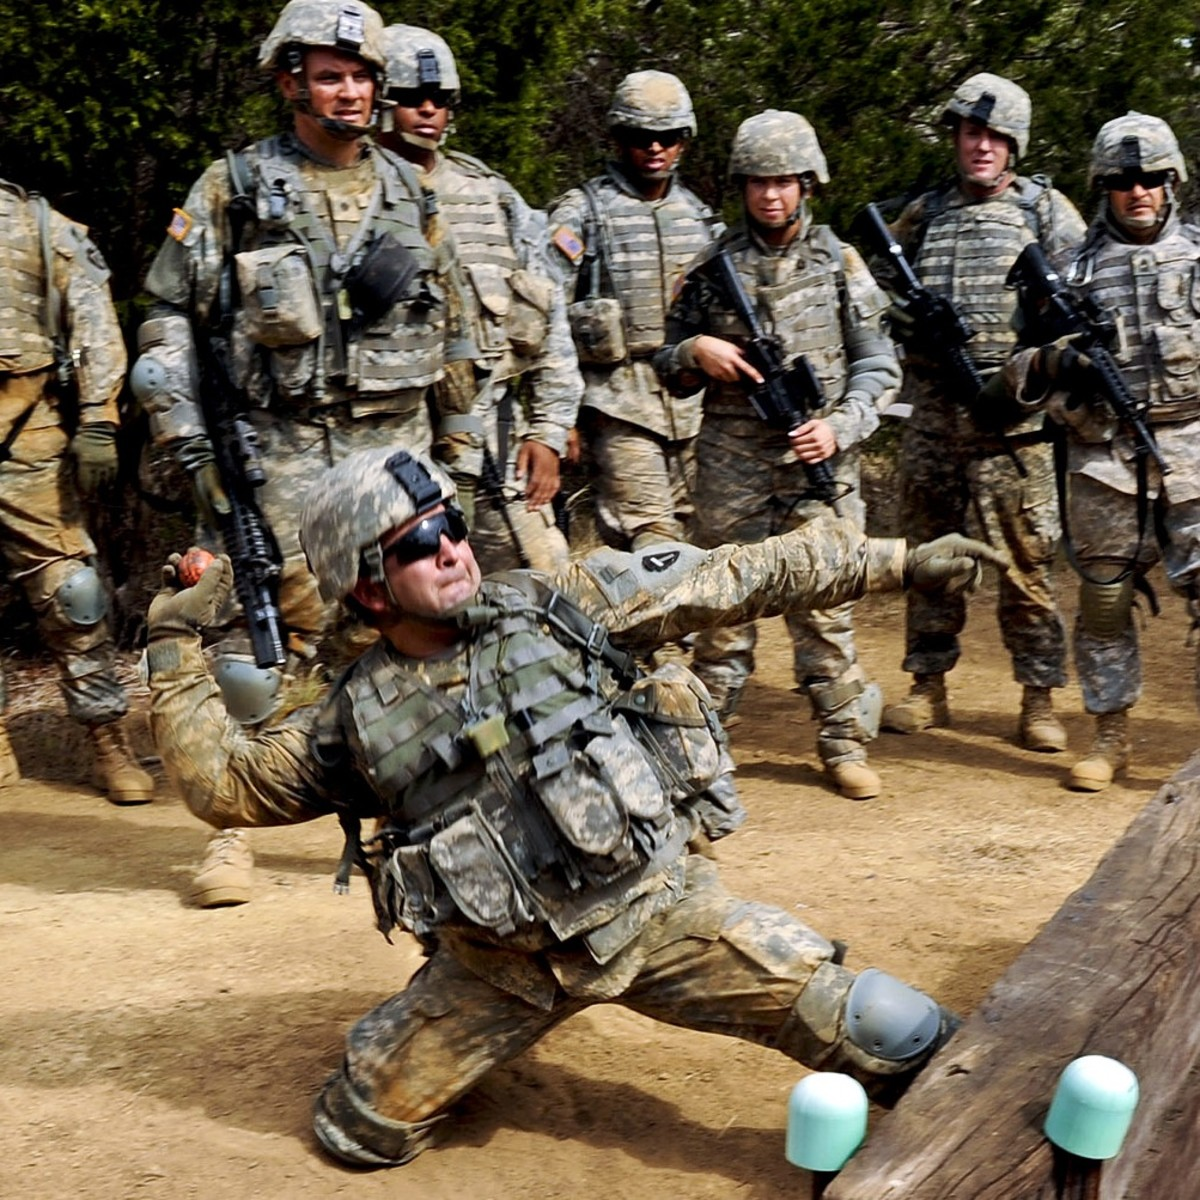 7 Reasons Basic Training Is Easy (That Nobody Tells You)